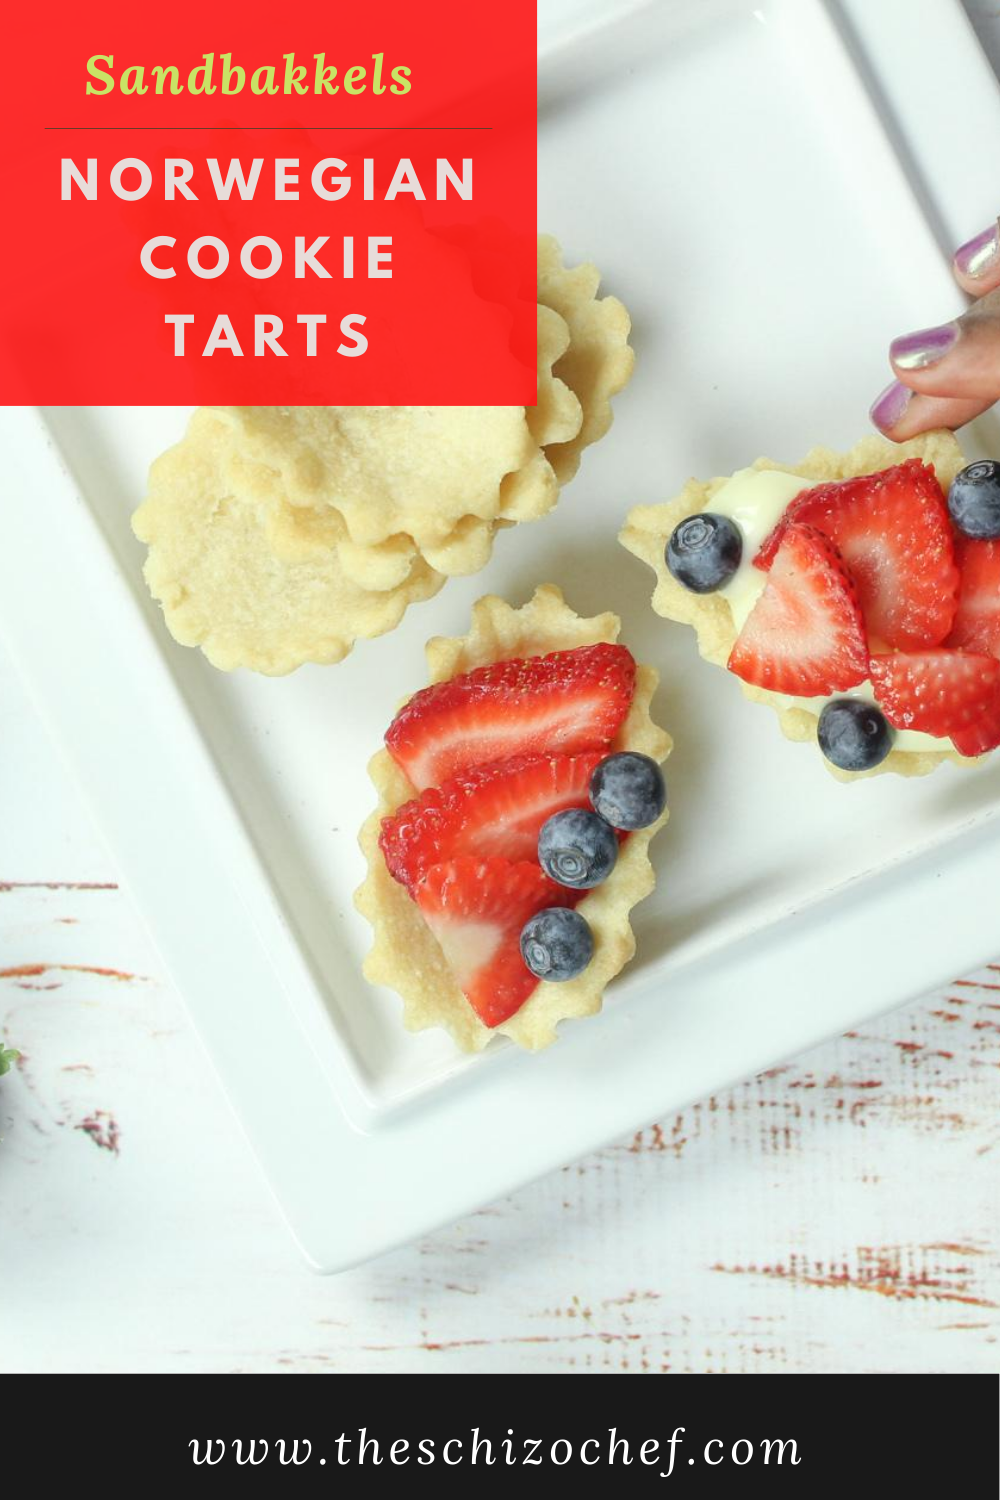 fruits in mini tarts with text